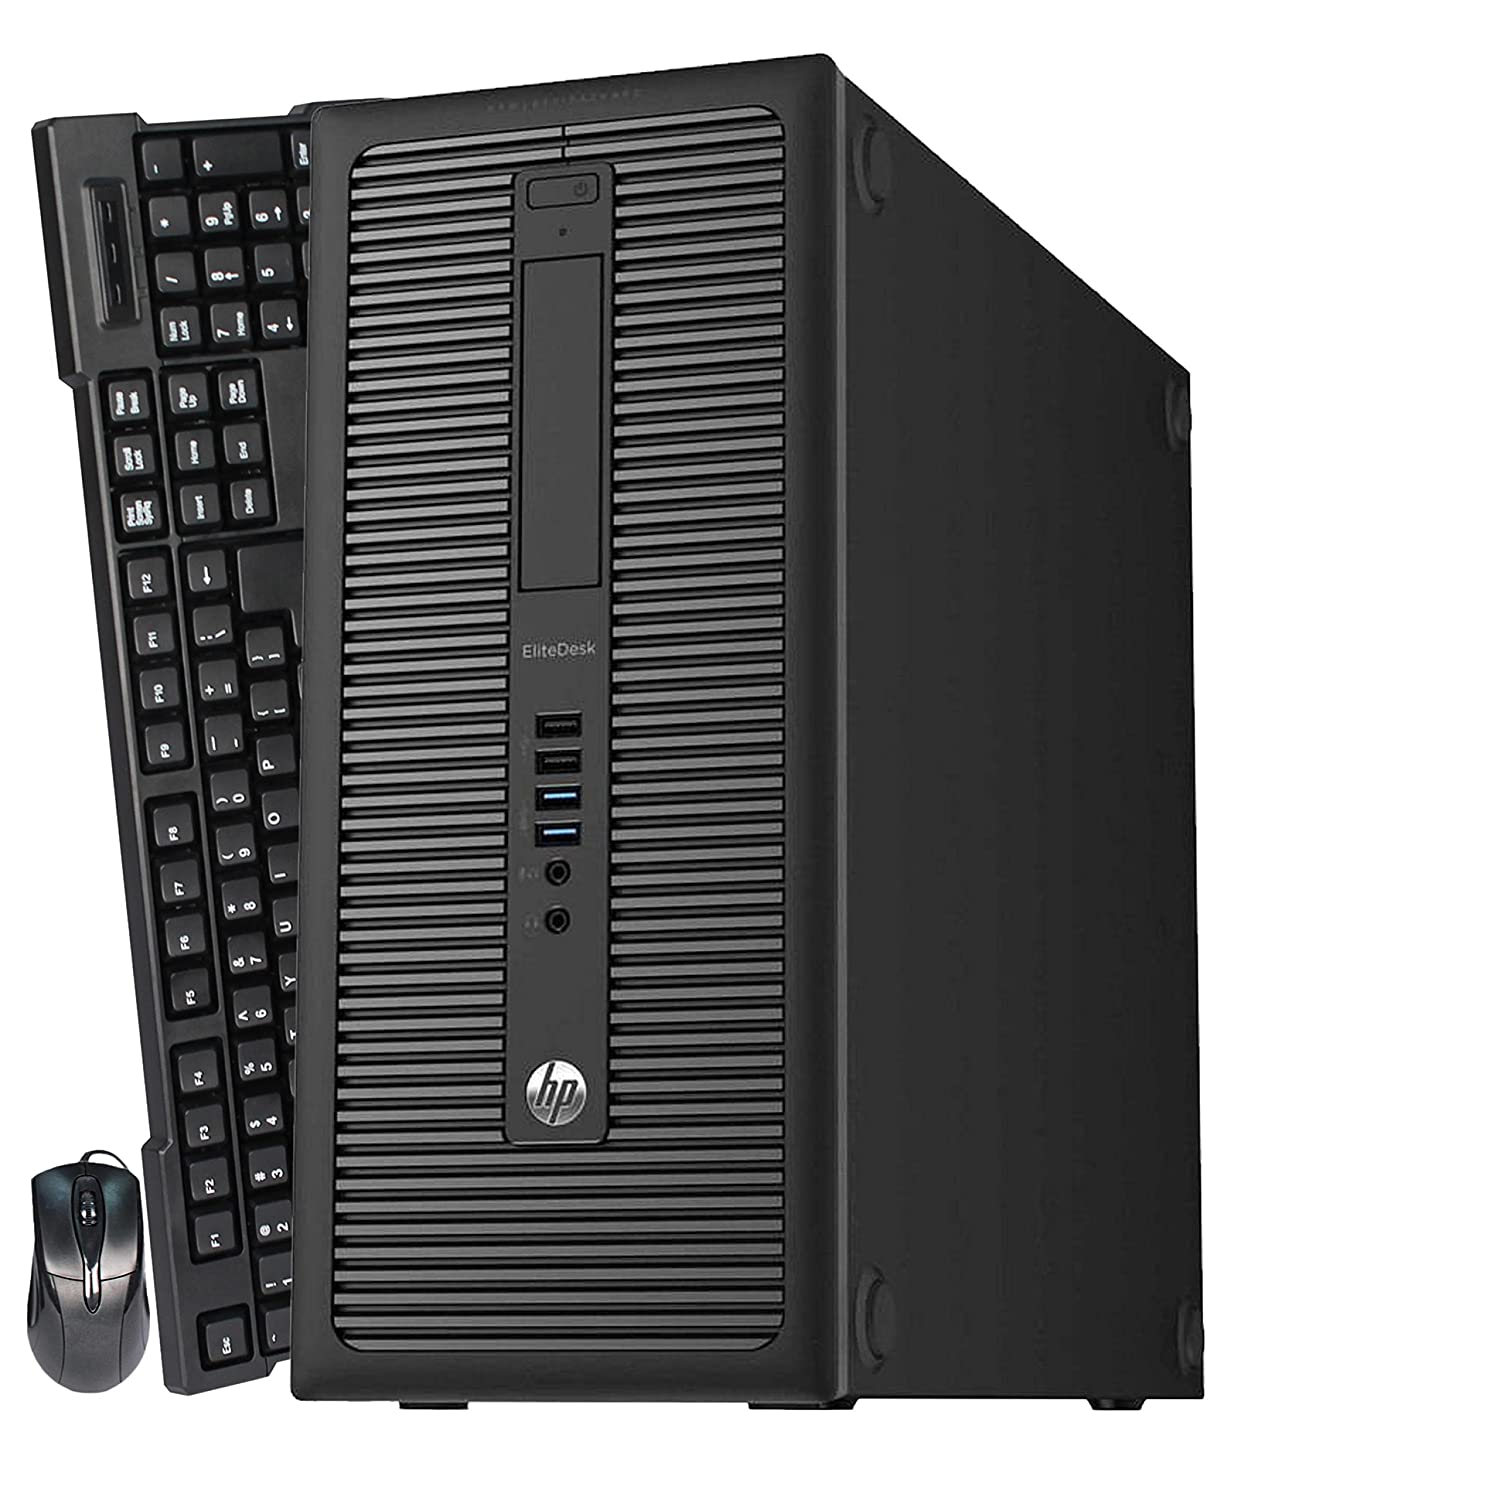 HP EliteDesk 800 G1 Tower Business High Performance Desktop Computer PC